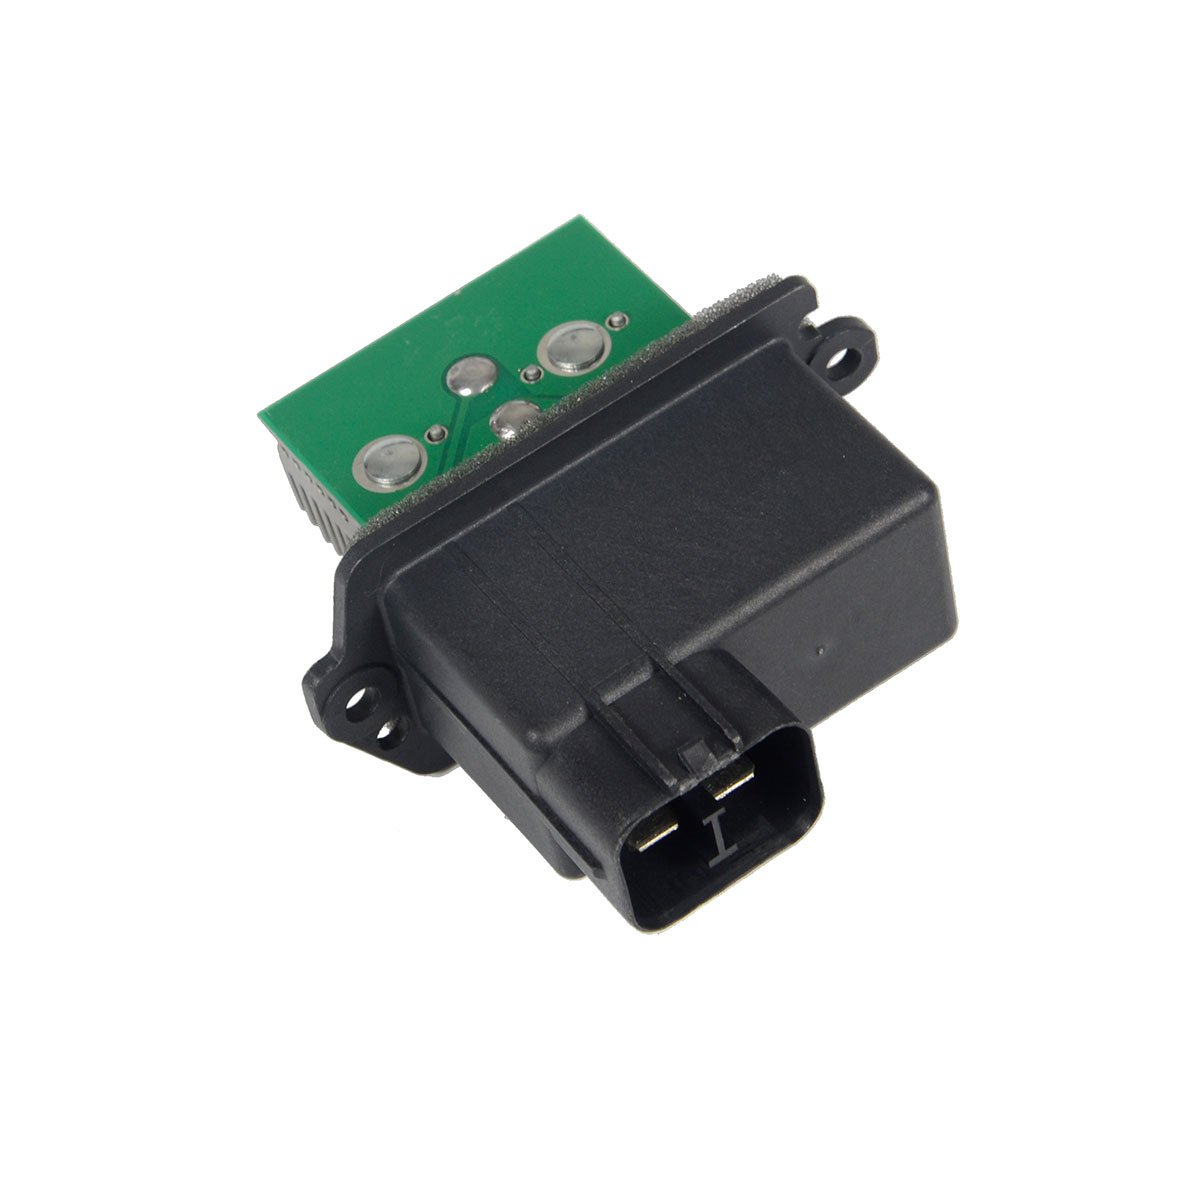 a c heater blower motor resistor for ford explorer mercury mountaineer 1998 1999 2000 2001 in blower motors from automobiles motorcycles on aliexpress com  [ 1200 x 1200 Pixel ]